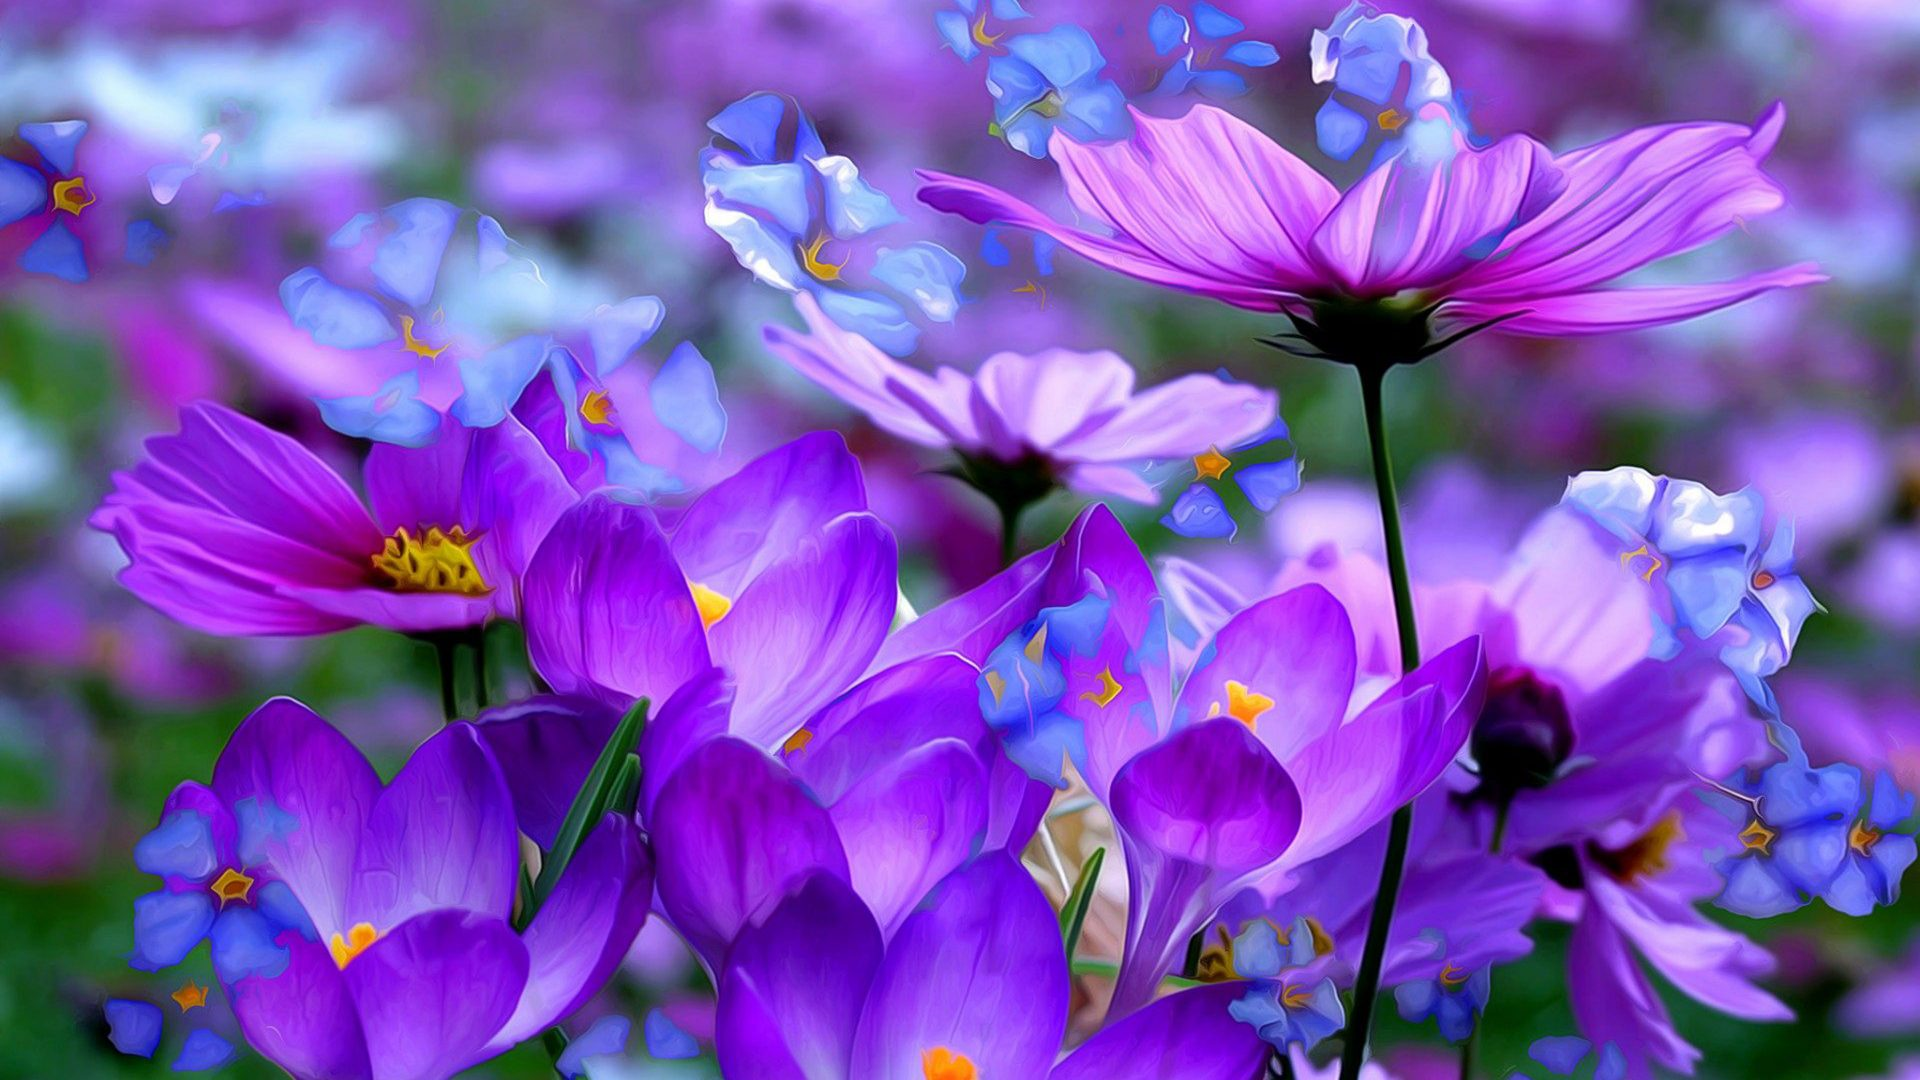 Crocuses Beautiful Purple Flowers Colored Detsktop Wallpaper Hd ...